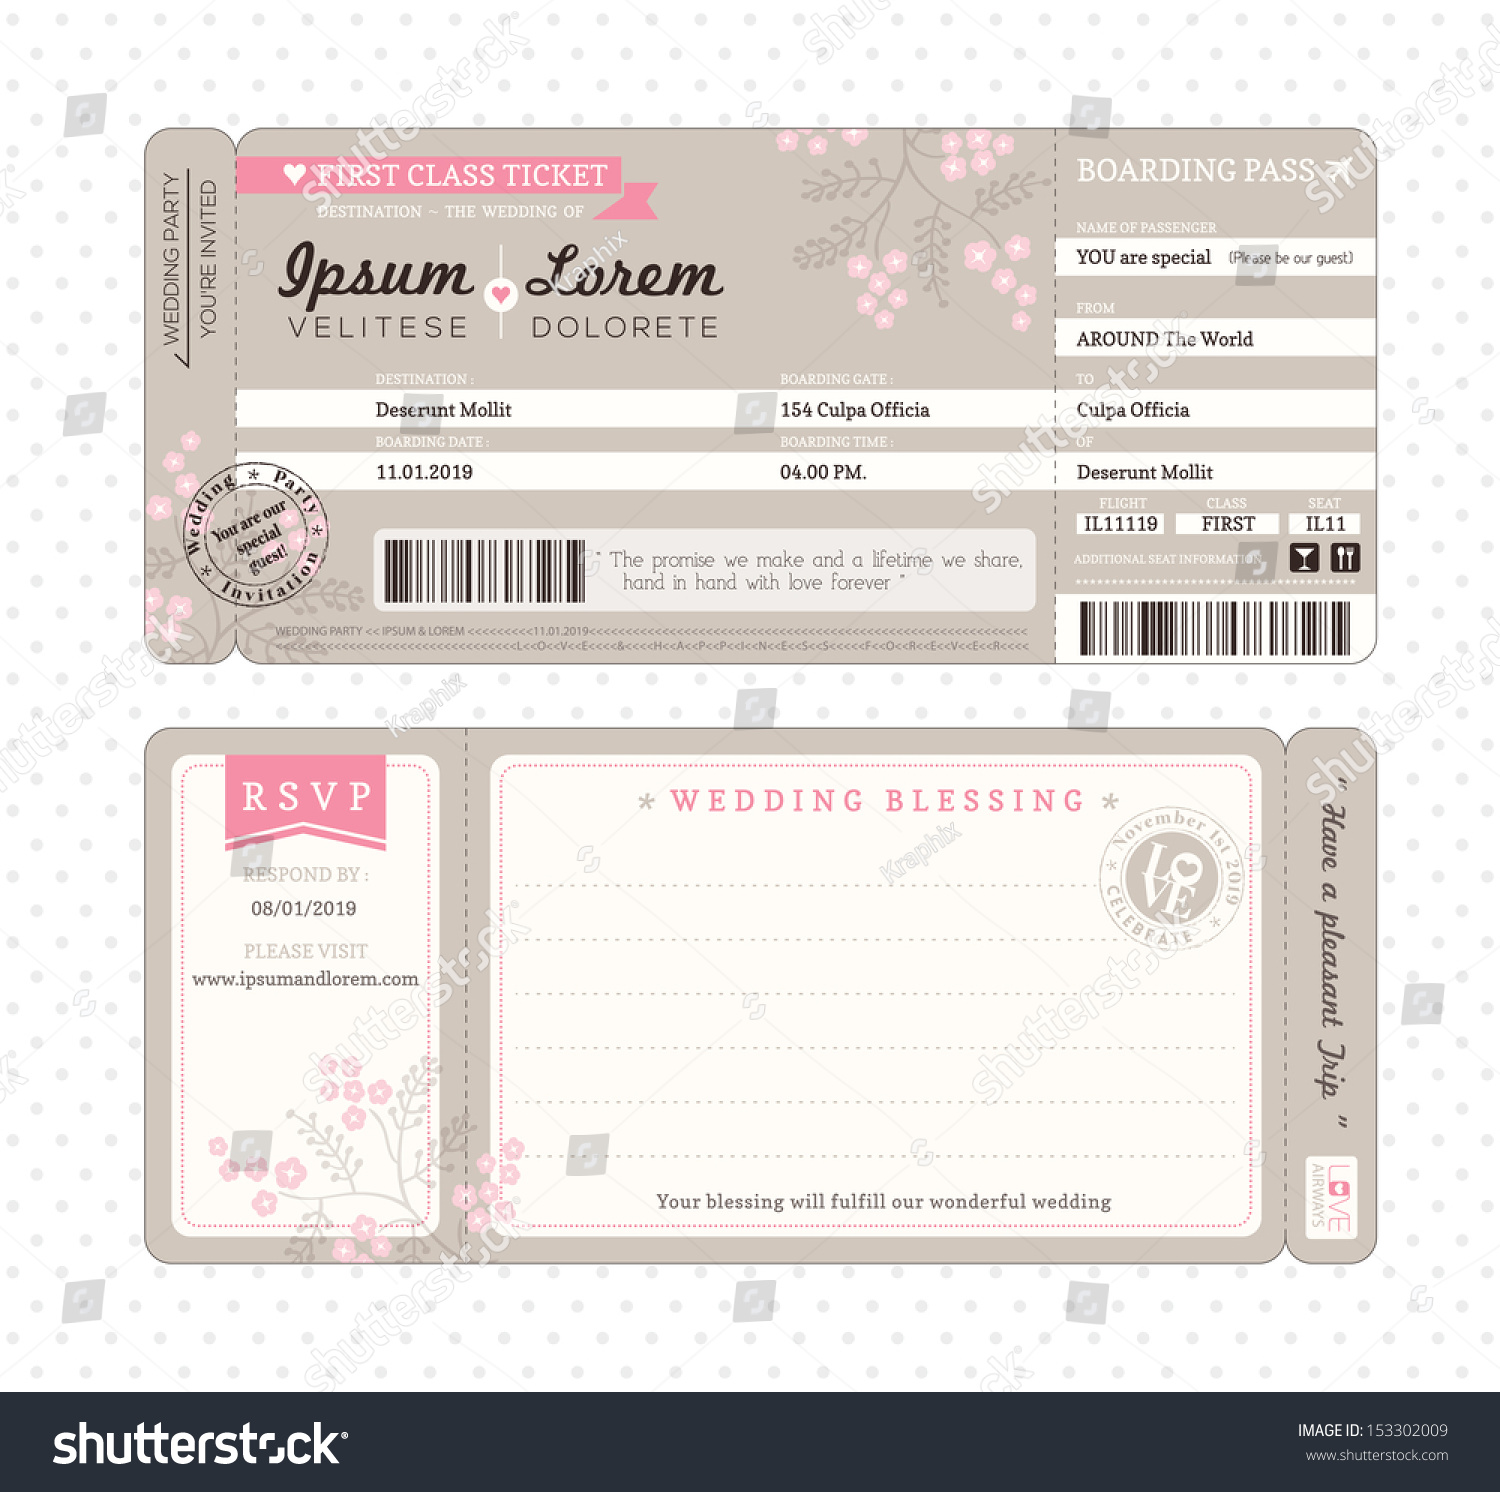 Boarding Pass Ticket Wedding Invitation Template Stock Vector